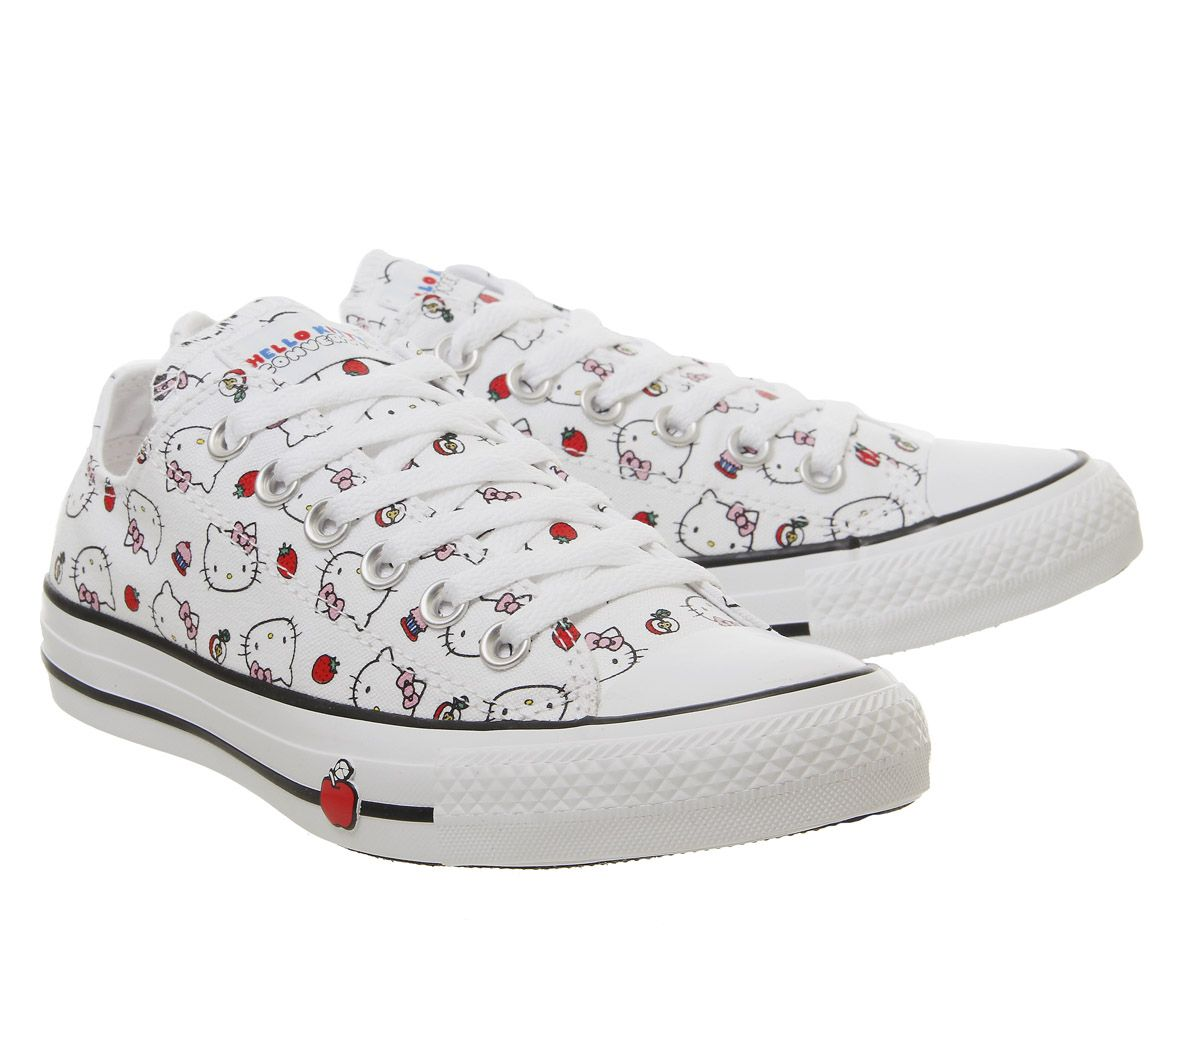 cef98d2c1632 Sentinel Womens Converse Converse All Star Low Trainers Hello Kitty White  Fiery Red Train